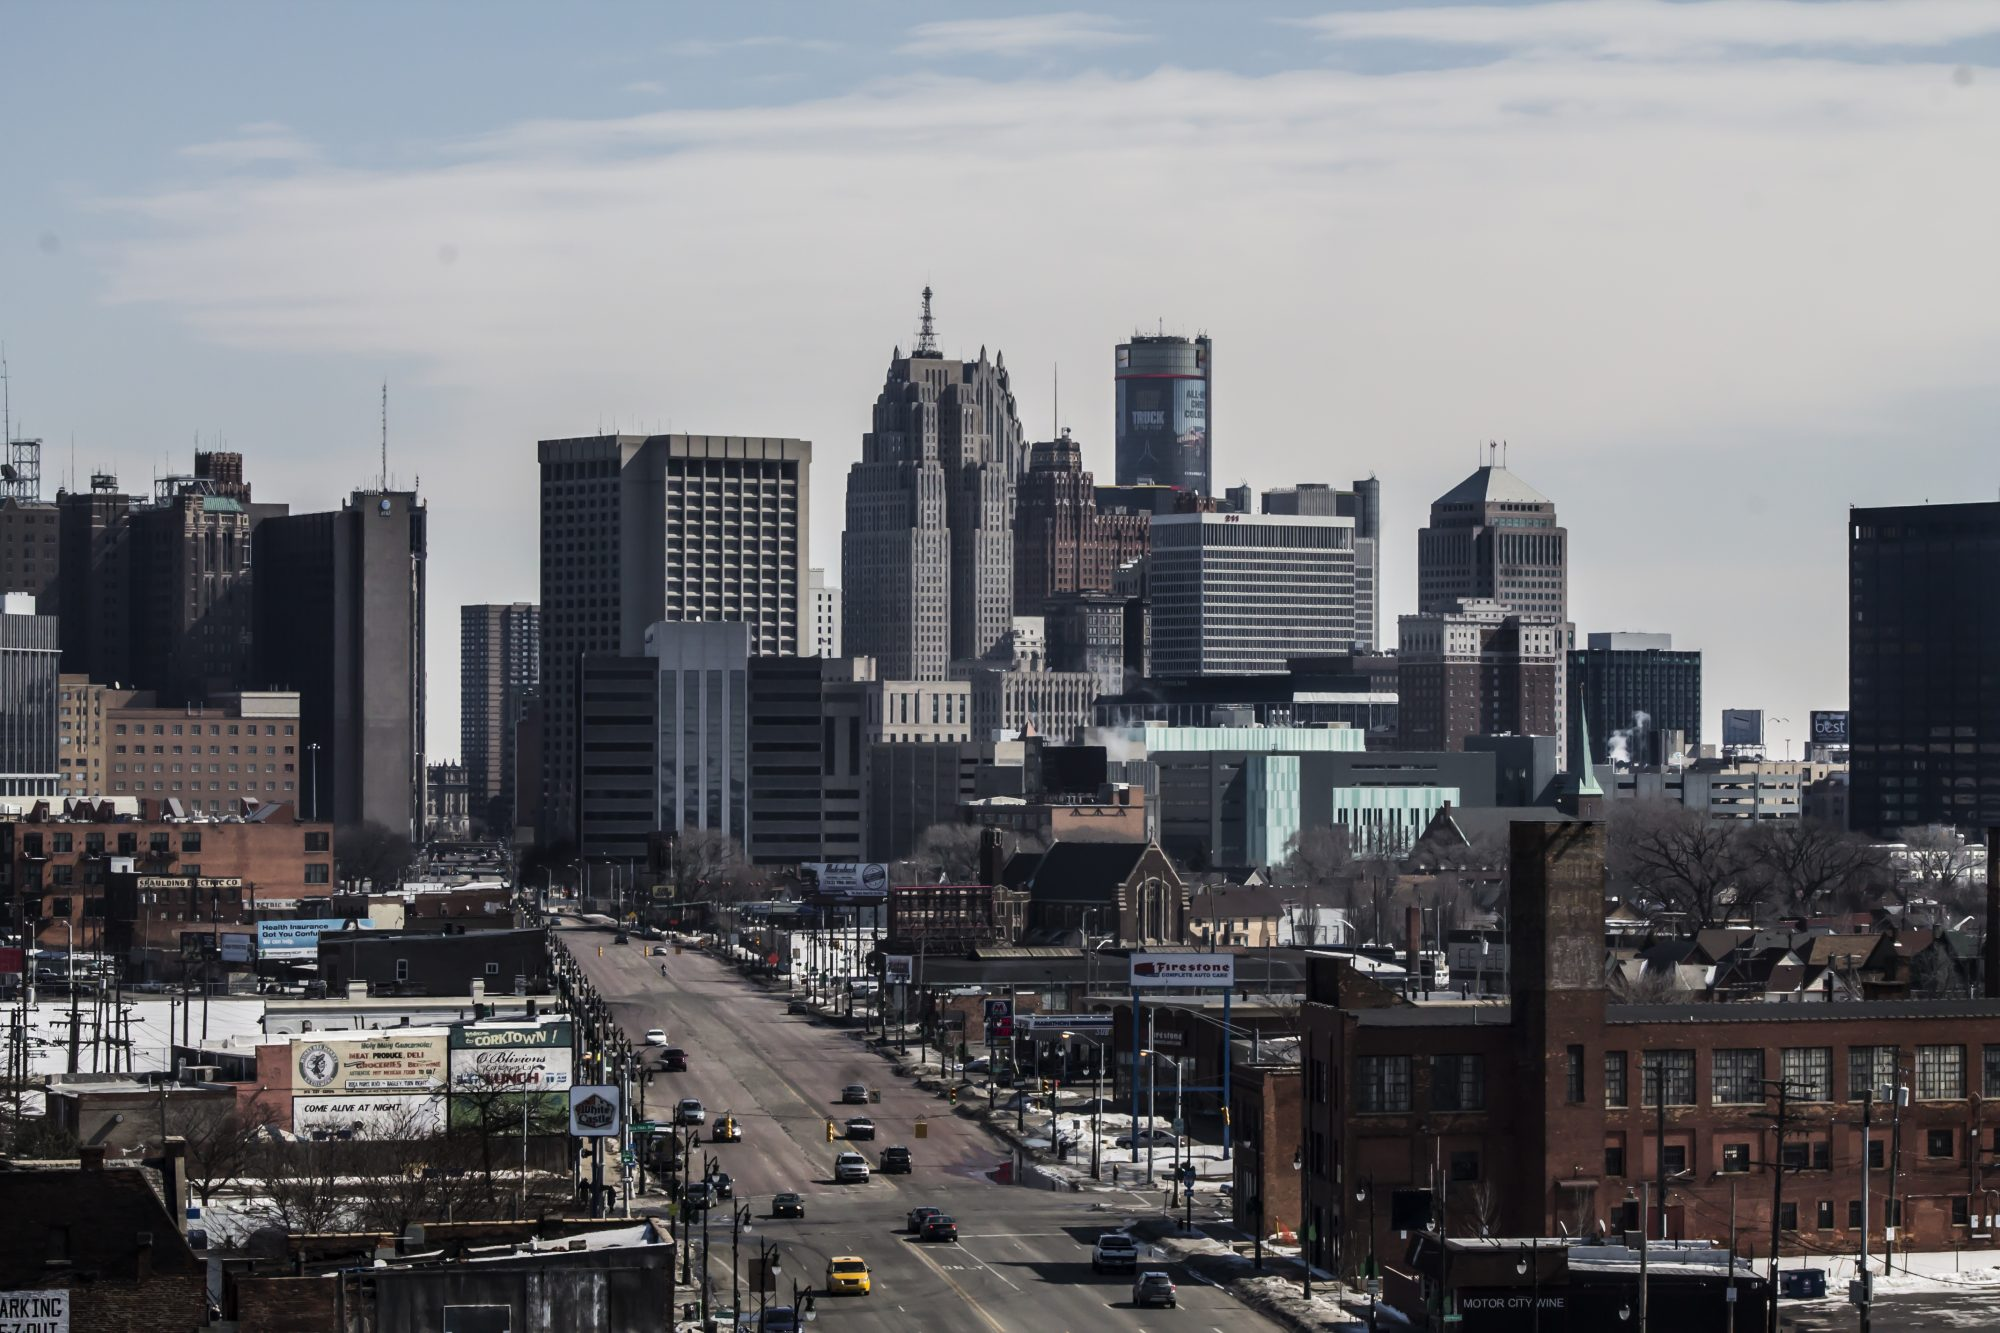 SMALL BUSINESS SUPPORT HELPING THOSE MOST VULNERABLE. DOWNTOWN DETROIT. PHOTO AMI NICOLE / ACRONYM